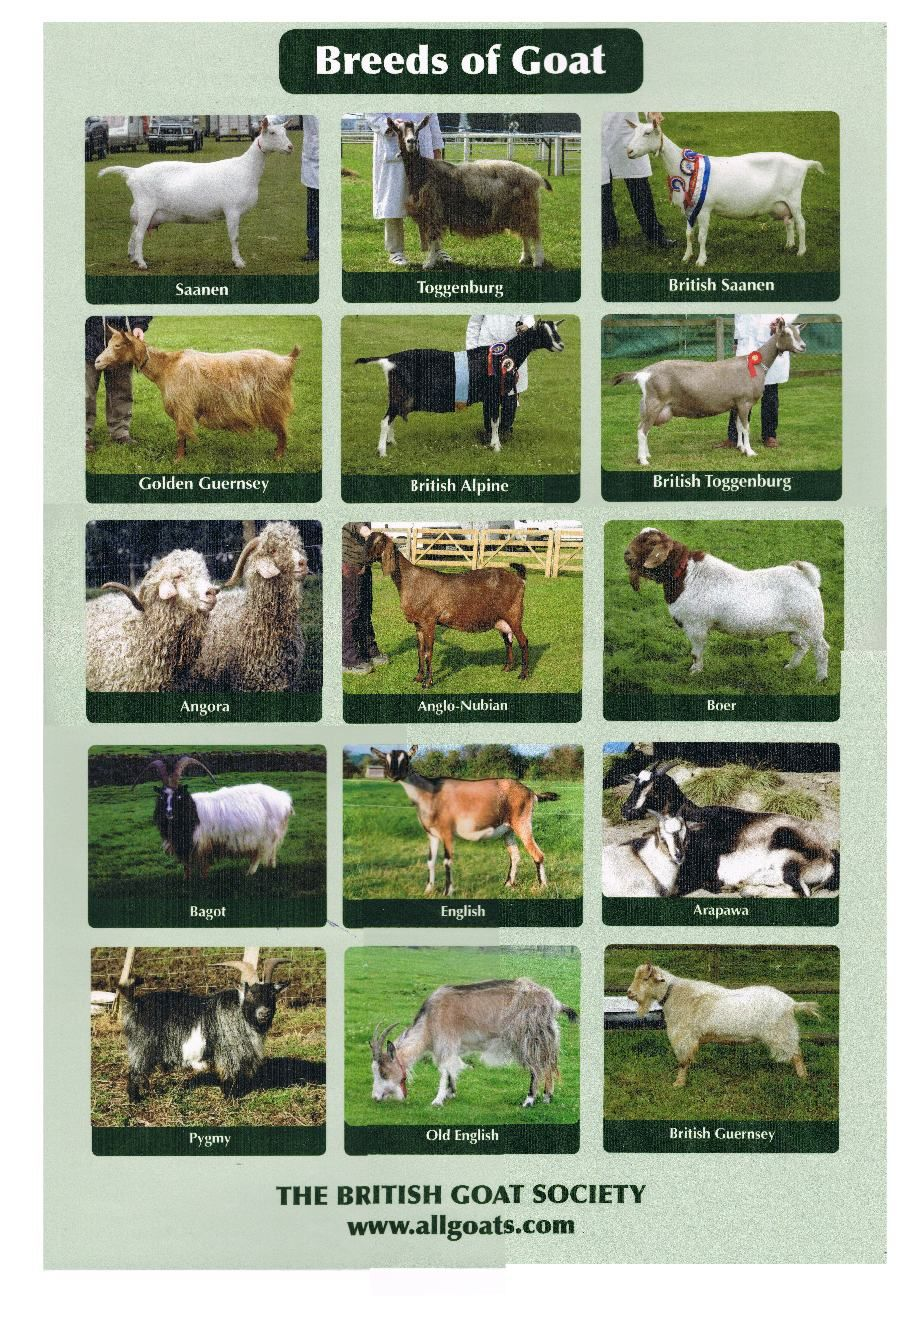 goat breeds with pictures on a poster | Copyright © All